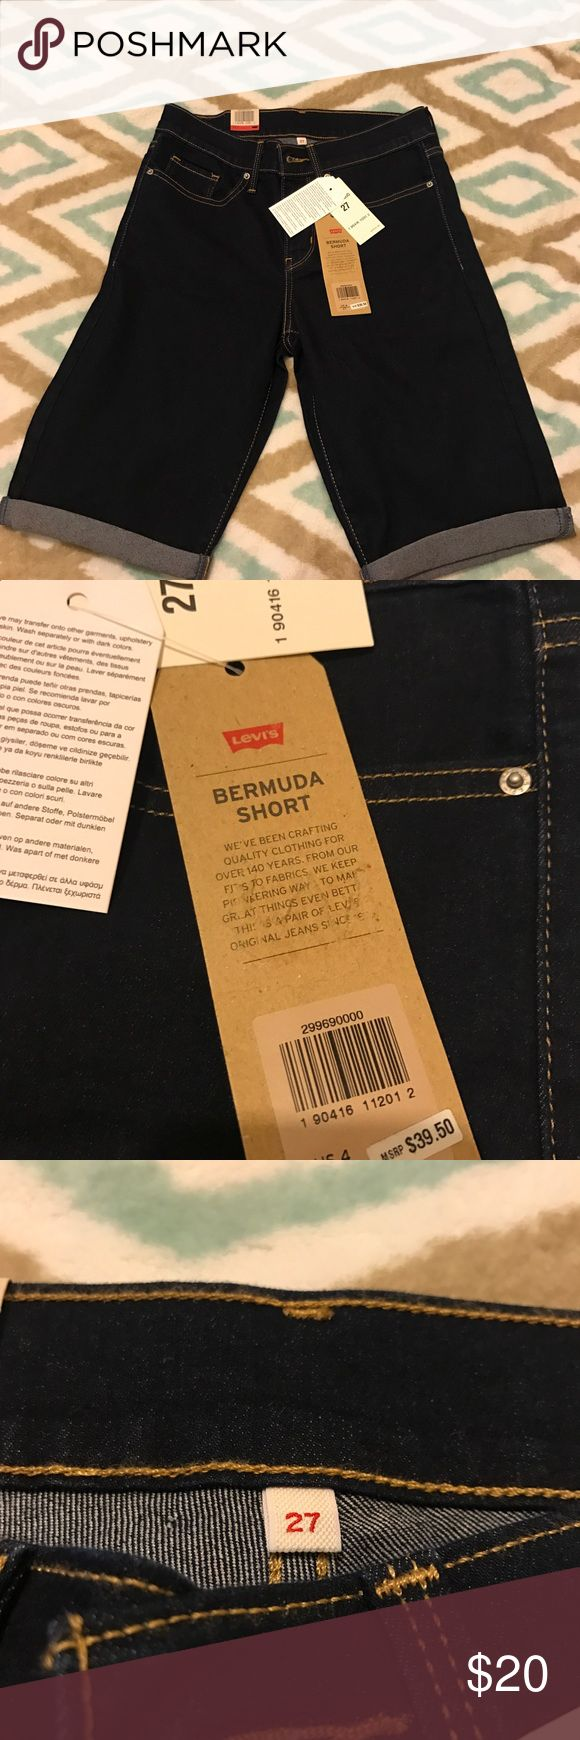 Levi's Bermuda Shorts Levi's Bermuda Shorts. Dark wash.  Waist 27 (size 4). Brand new and never worn. Tags still on. Levi's Shorts Jean Shorts